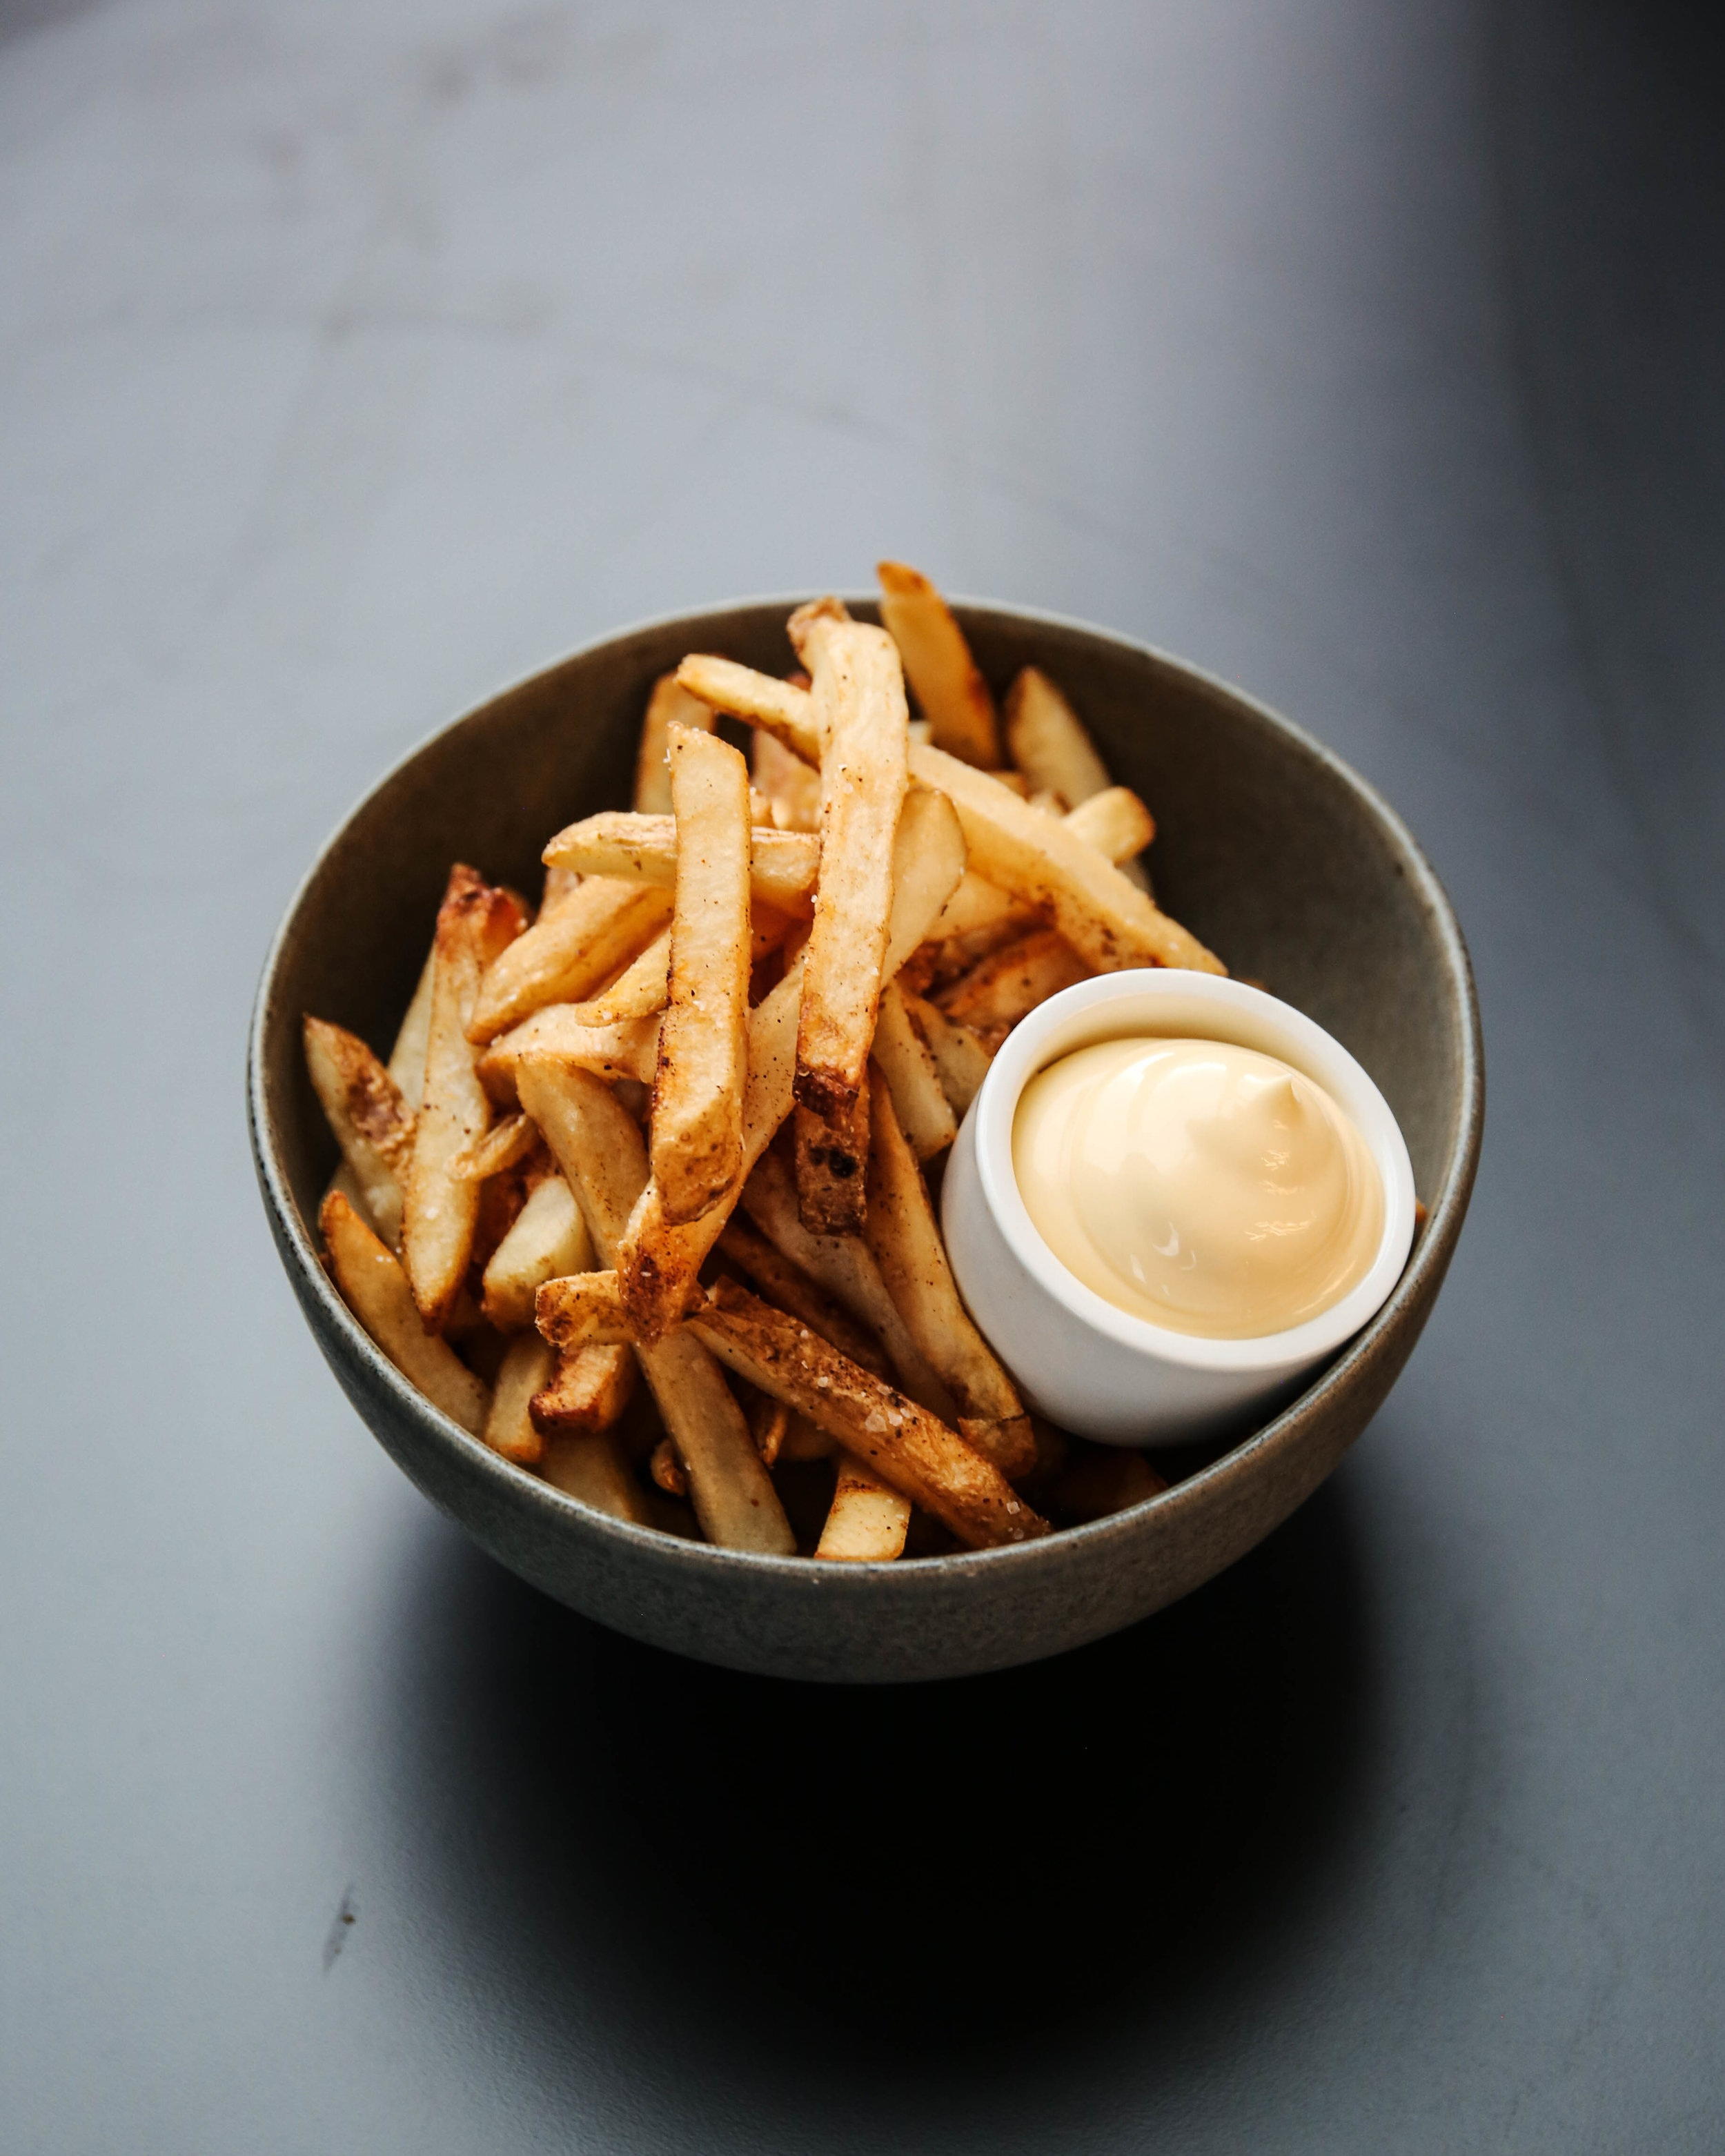 Fries - Served with Special Sauce